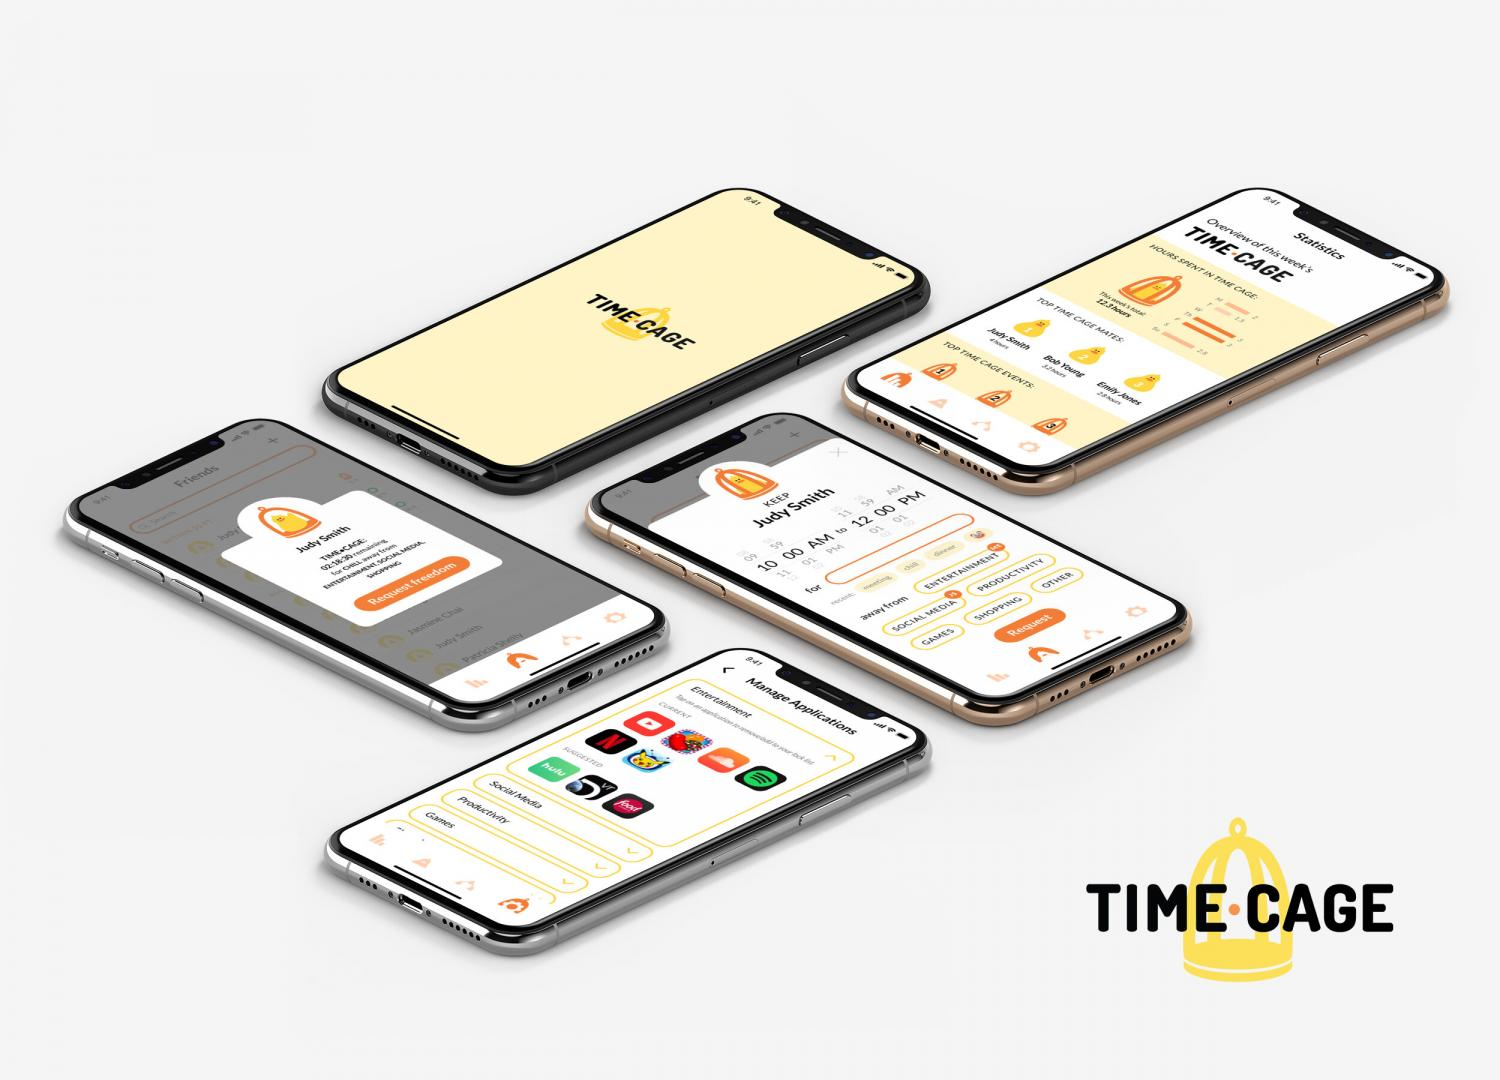 """Image of phones with UI/UX concept that uses metaphor of a bird cage, enabling users to lock applications on their friends' and their own phones using a """"time cage"""" while they are together."""